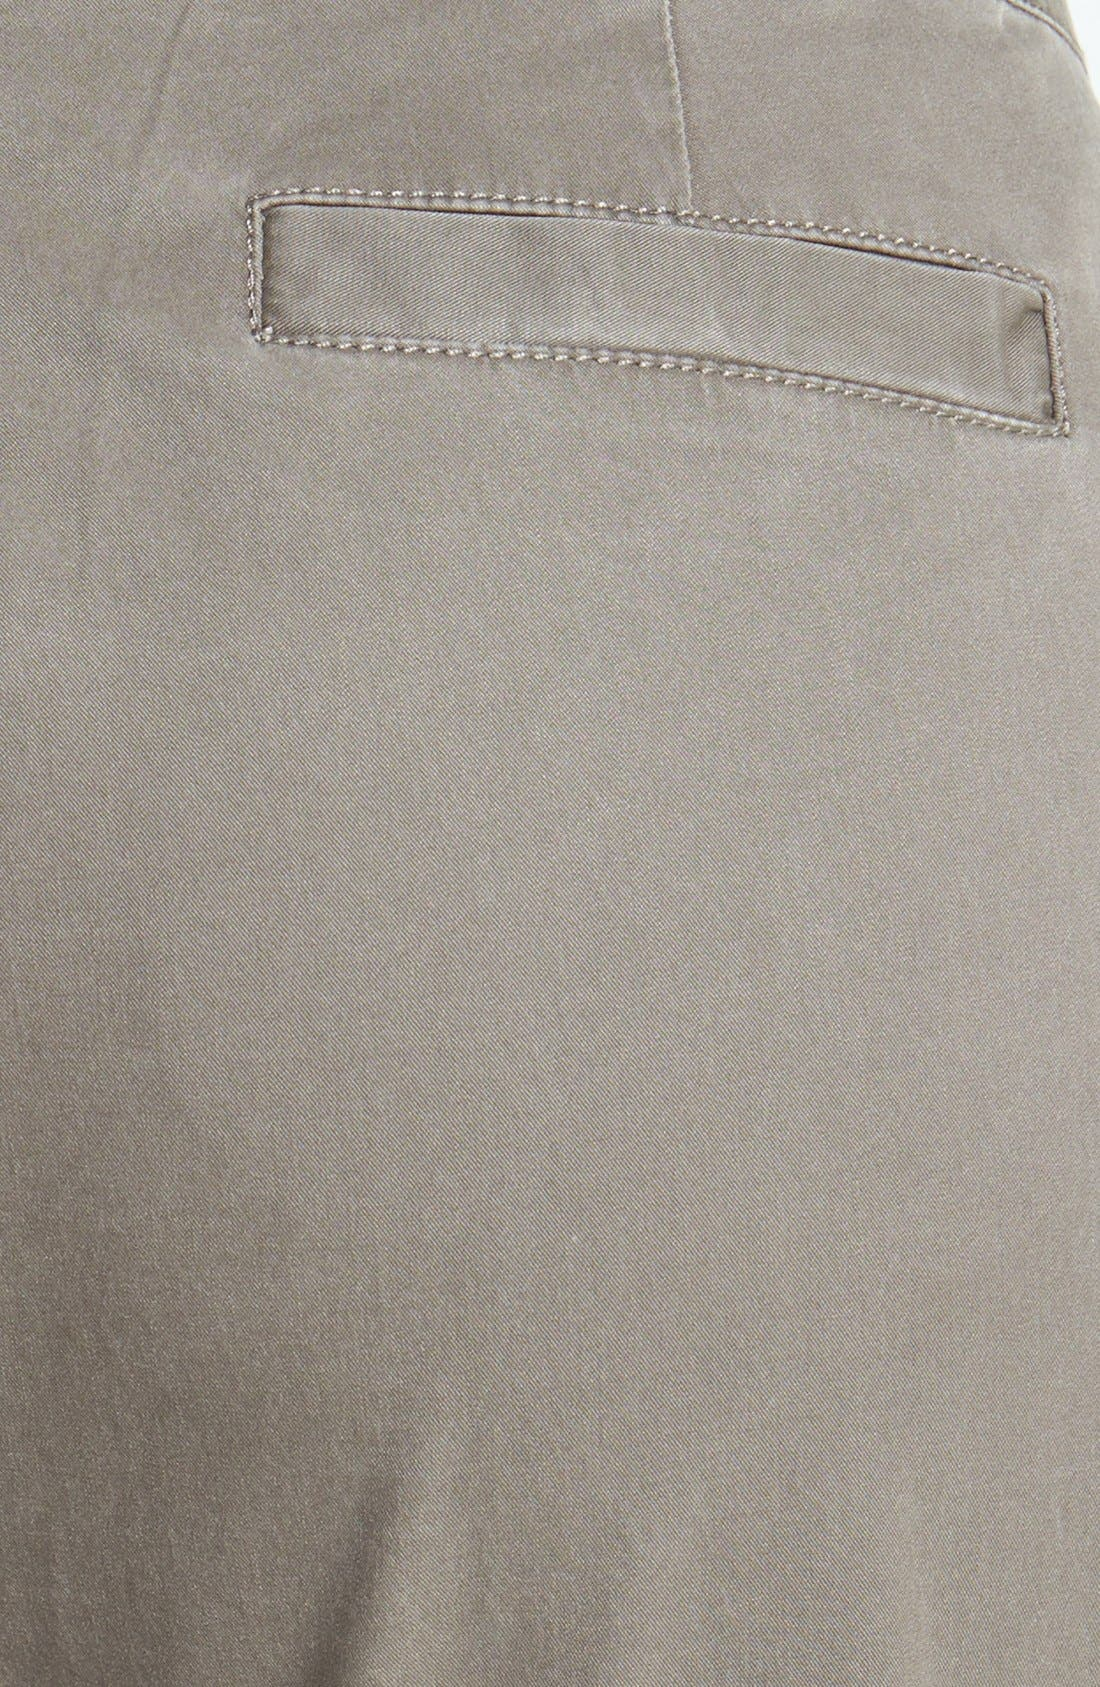 Alternate Image 3  - Eileen Fisher Twill Ankle Trousers